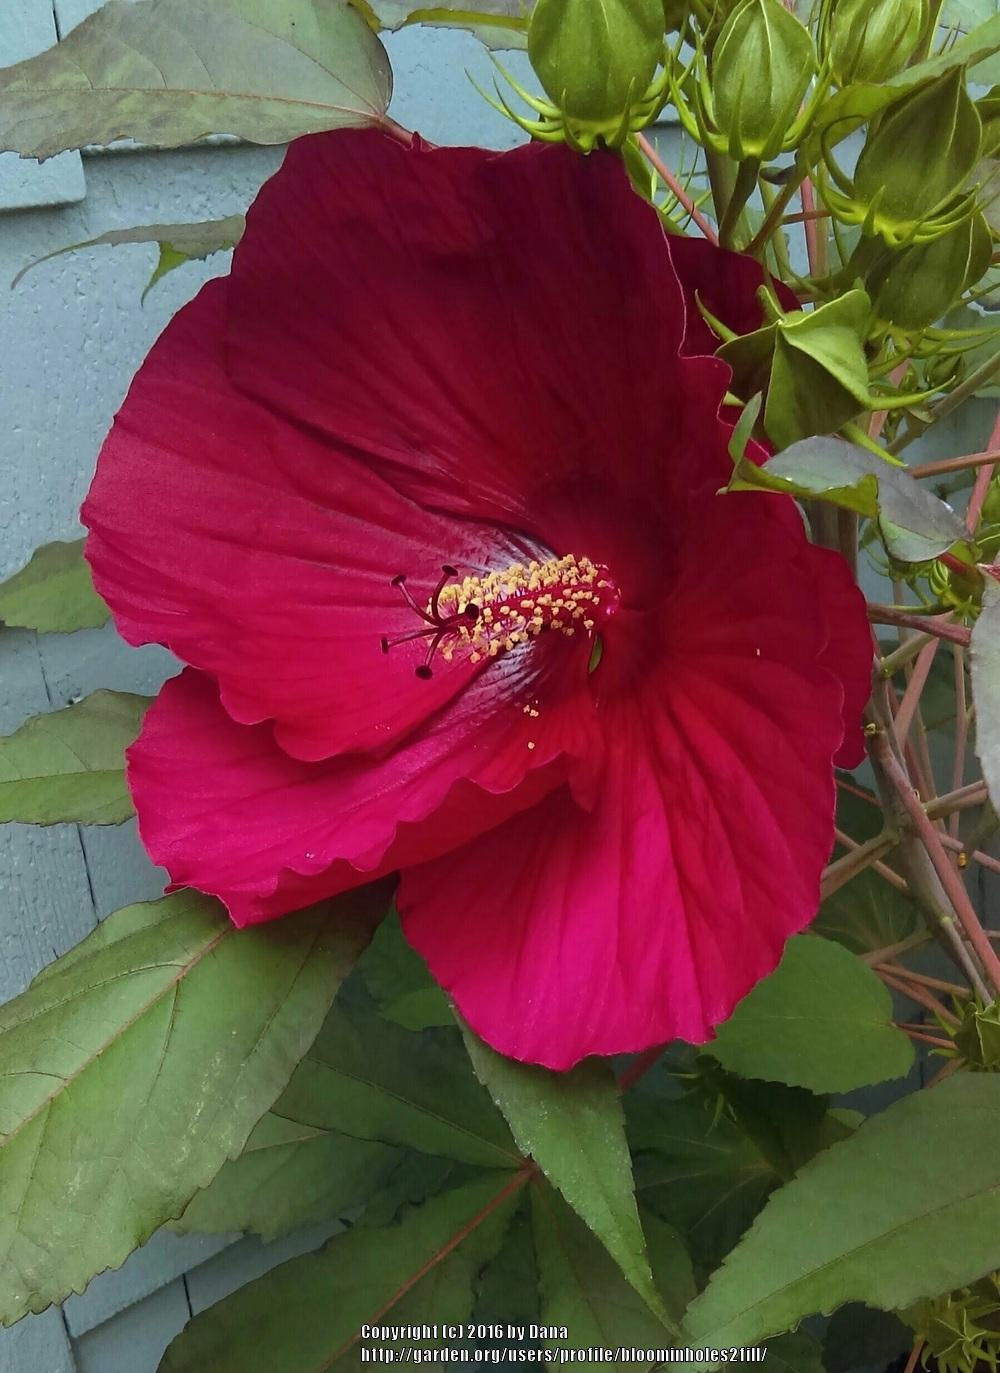 Classifieds and group buys forum mature midnight marvel hibiscus thumb of 2016 09 06bloominholes2fill786f0b izmirmasajfo